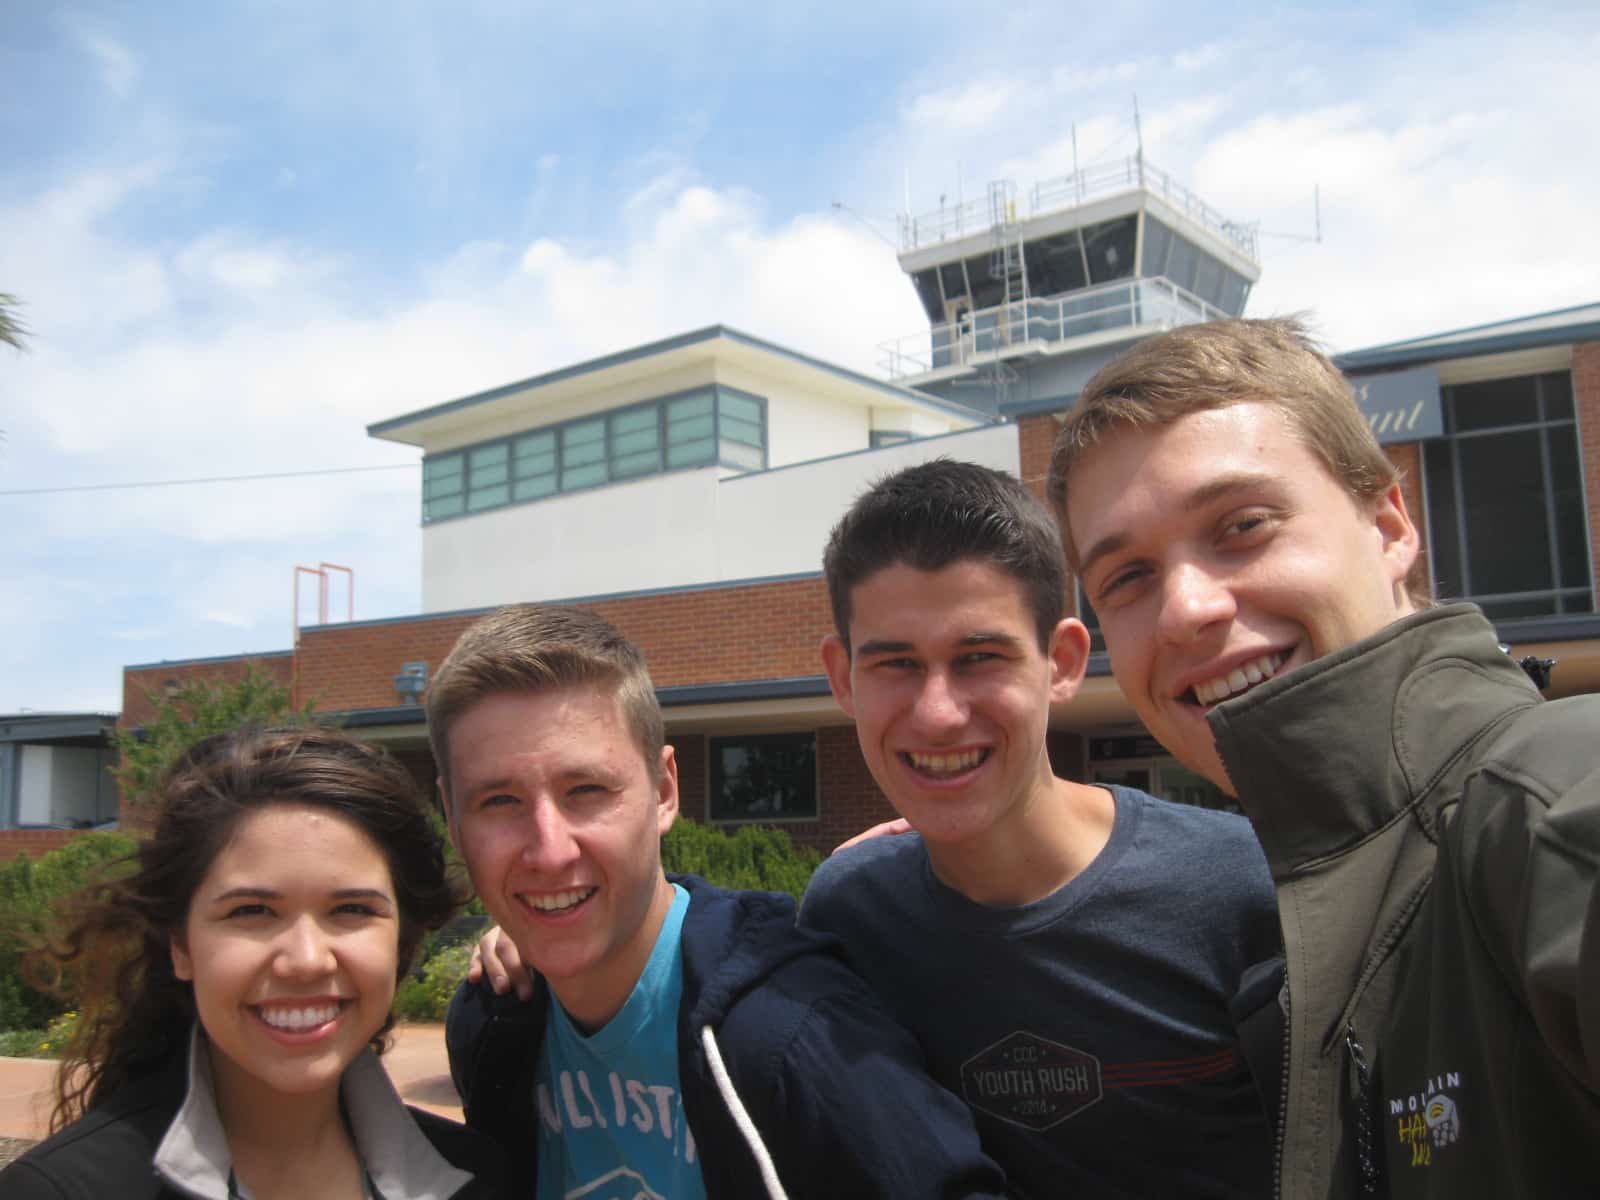 Ground School Class Visits Control Tower